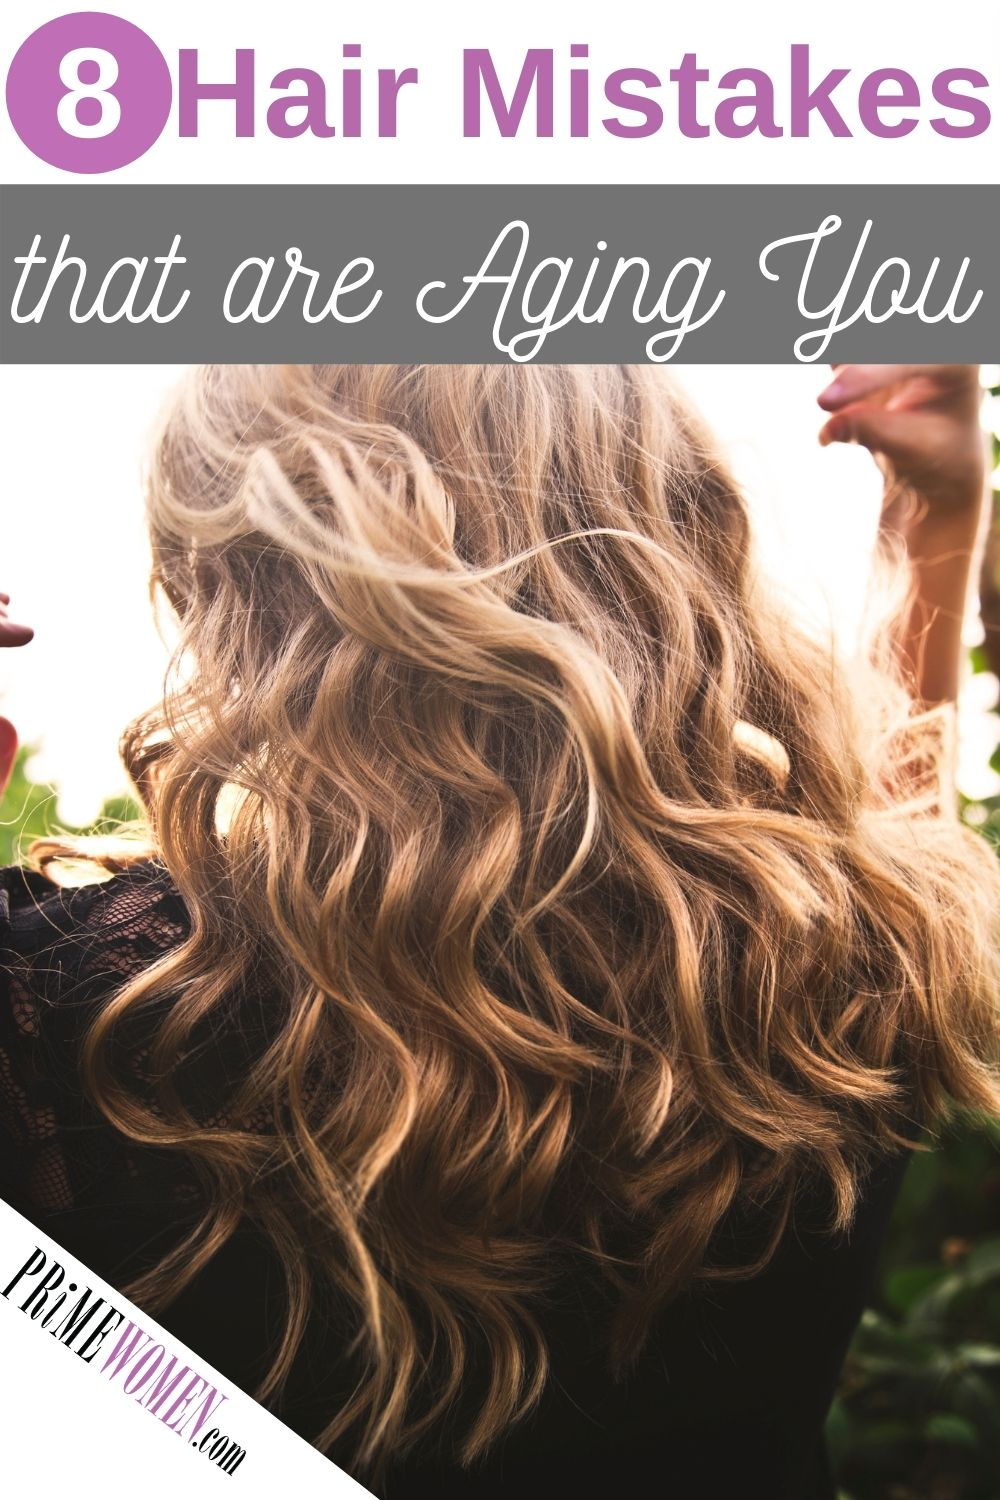 8 Hair Mistakes that are Aging You